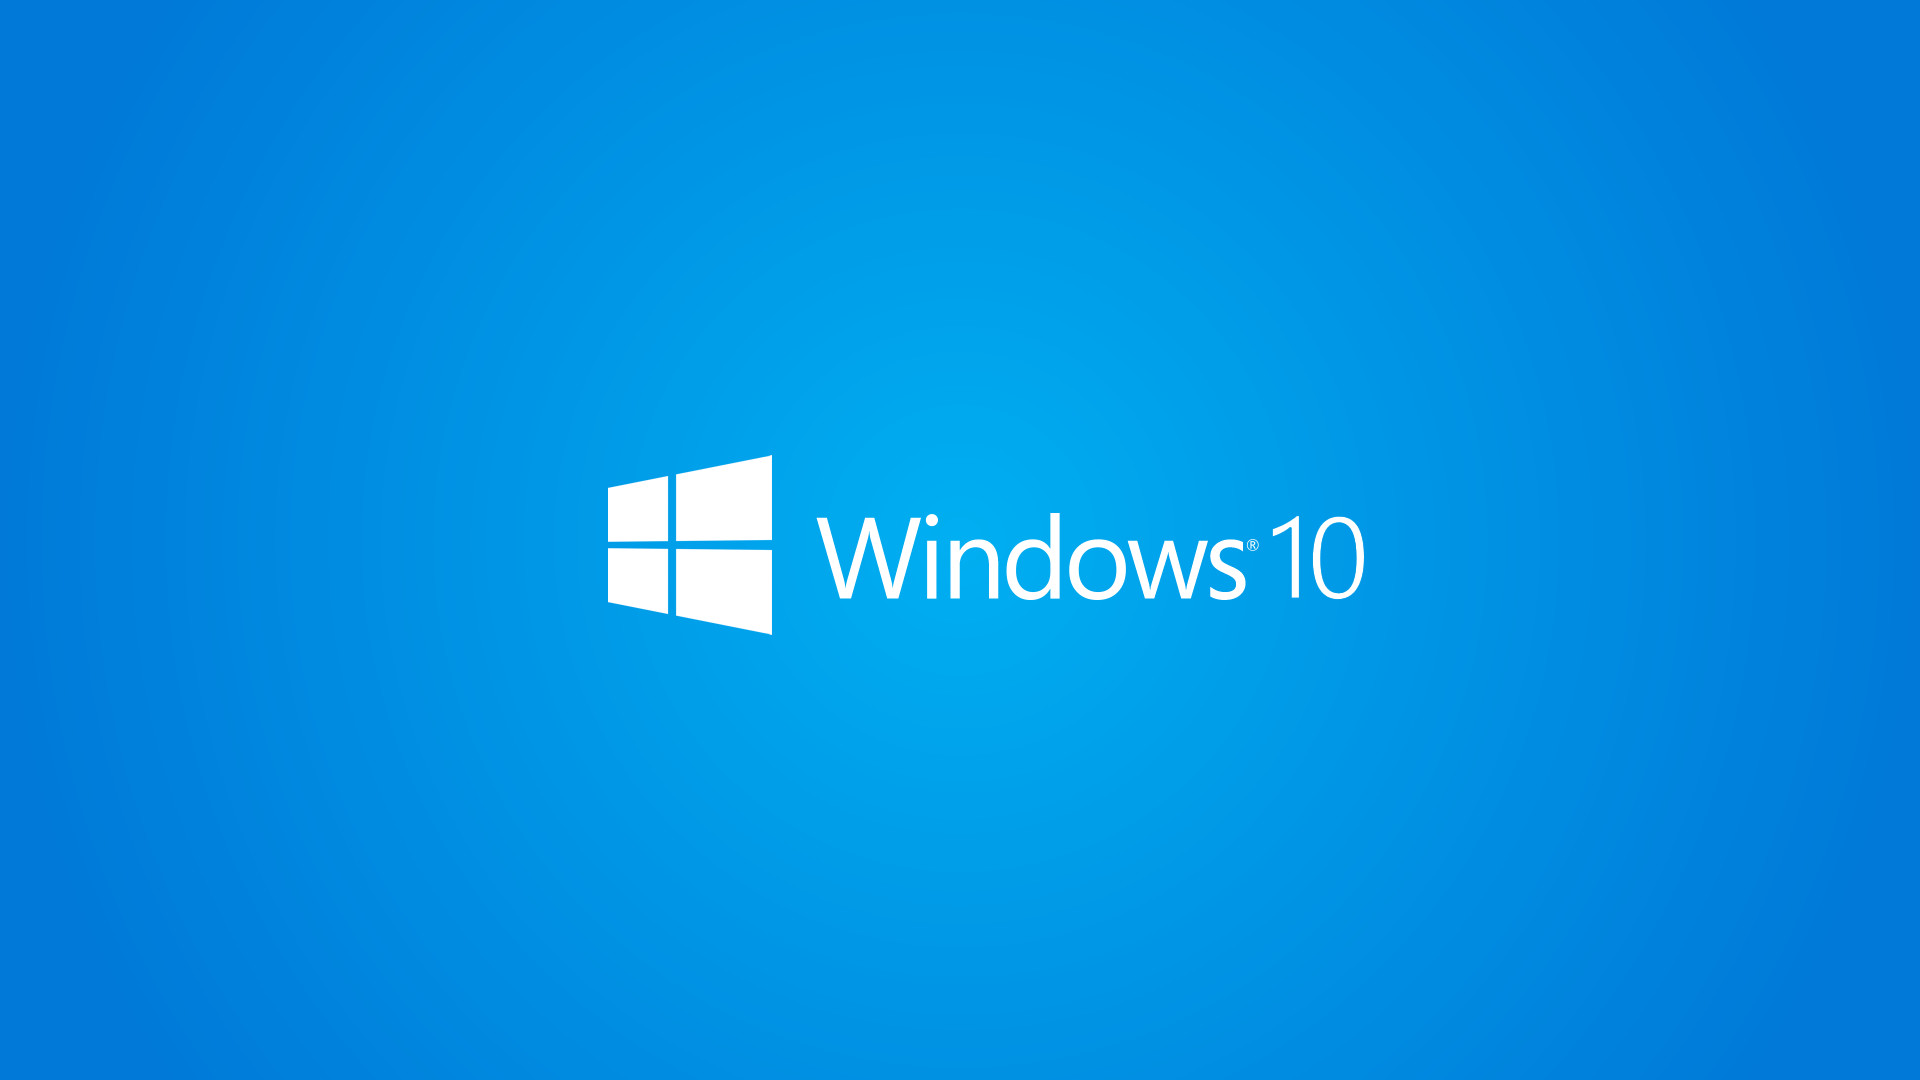 1920x1080 Windows 10 Wallpaper 1080p Full HD White Logo Blue Background